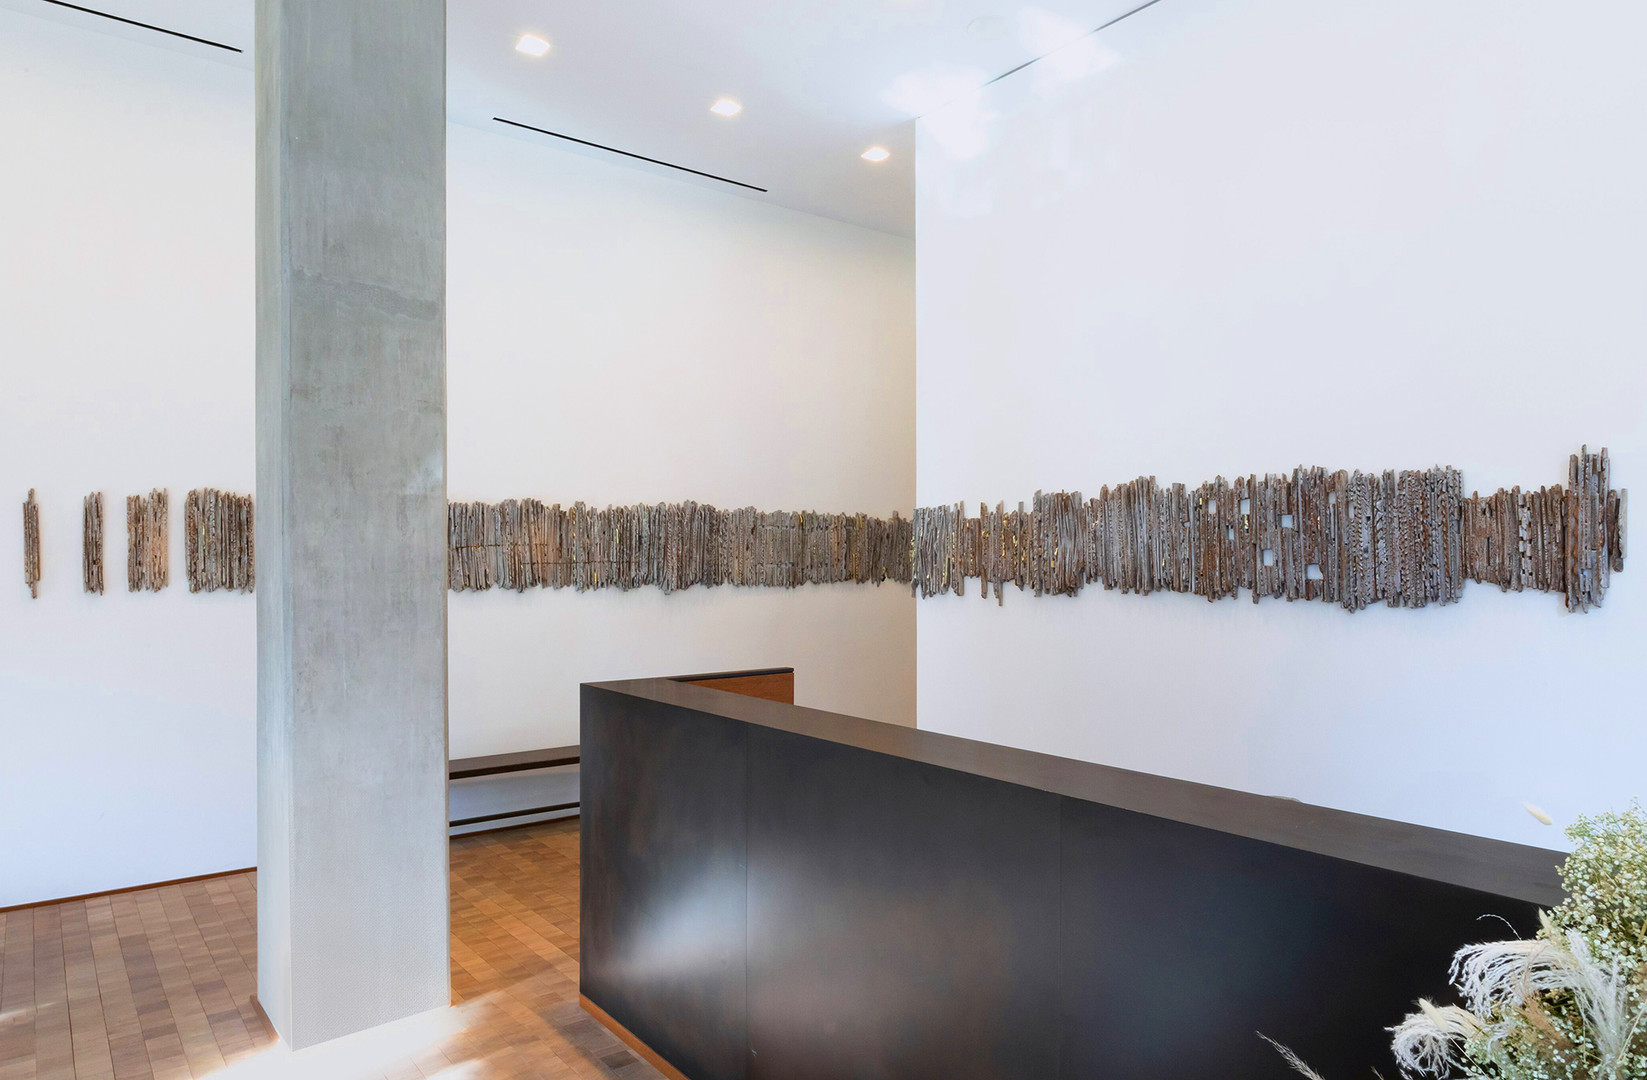 JUNE 28, 2019, a site-responsive wall sculpture commissioned for the residential lobby at LIZ, DC